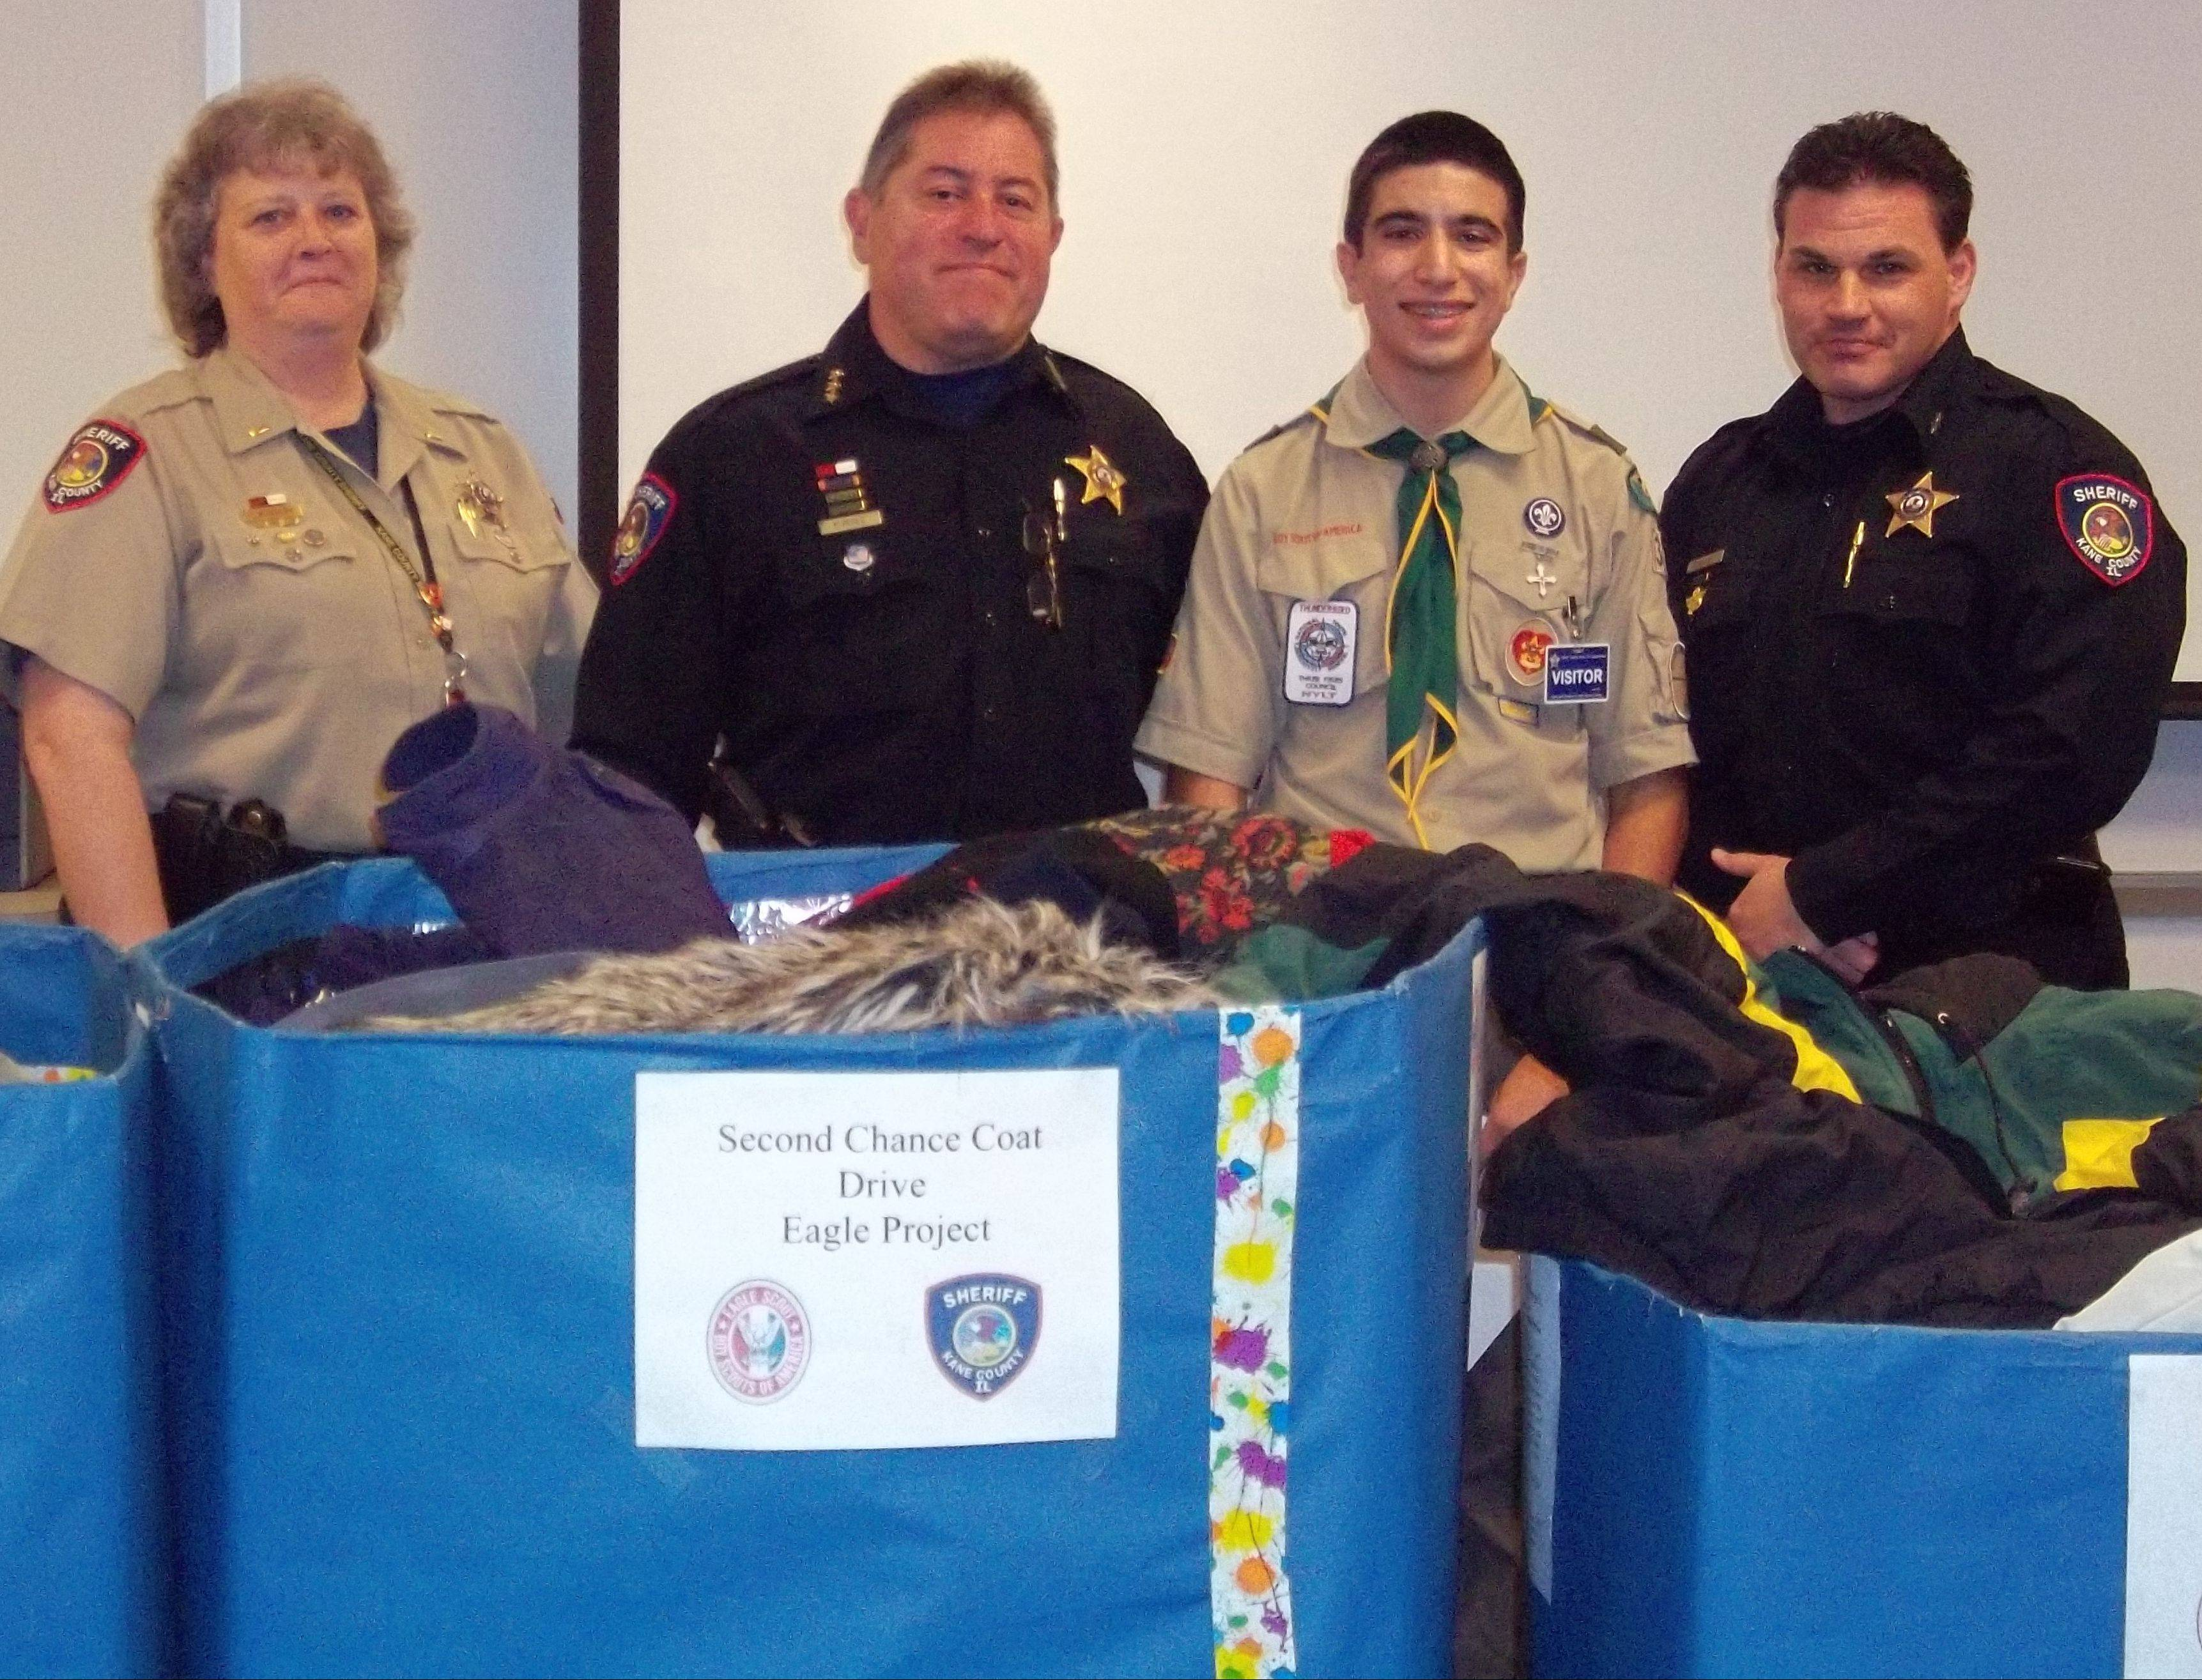 From left, Kane County Corrections Lt. Lynne Woodruff, Sheriff Pat Perez, Eagle Scout candidate Ted Spiro and Undersheriff David Wagner thanked Spiro for his successful �Second Chance Coat Drive,� which resulted in 300 winter coats for inmates at the Kane County jail. Spiro, of Geneva, went to more than 1,500 homes throughout the Tri-Cities to solicit the coats.